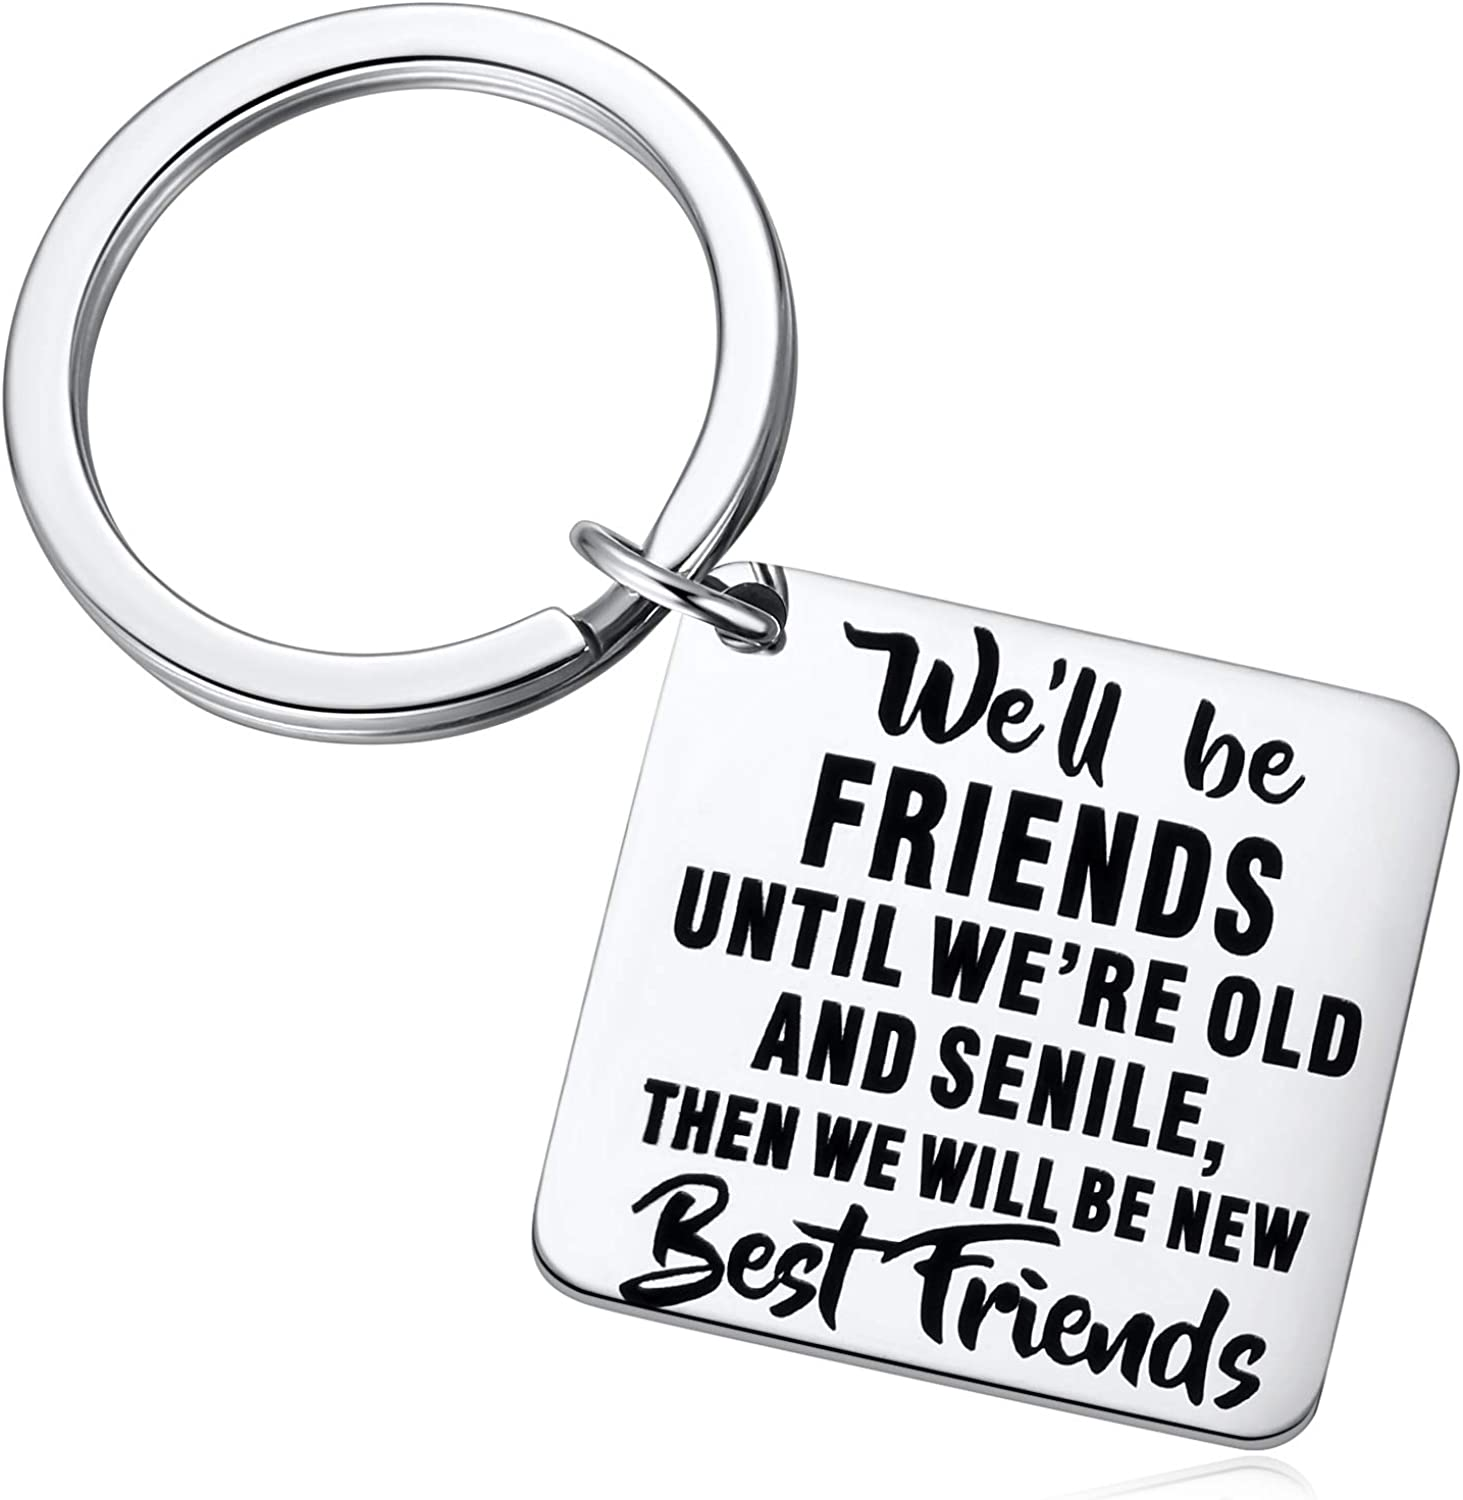 We'll be Friends Until We are Old and Senile - Best Friend BFF Gifts for Women - Funny Long Distance Birthday, Christmas Gift for Unbiological Soul Sister, Besties - Friendship Keychain